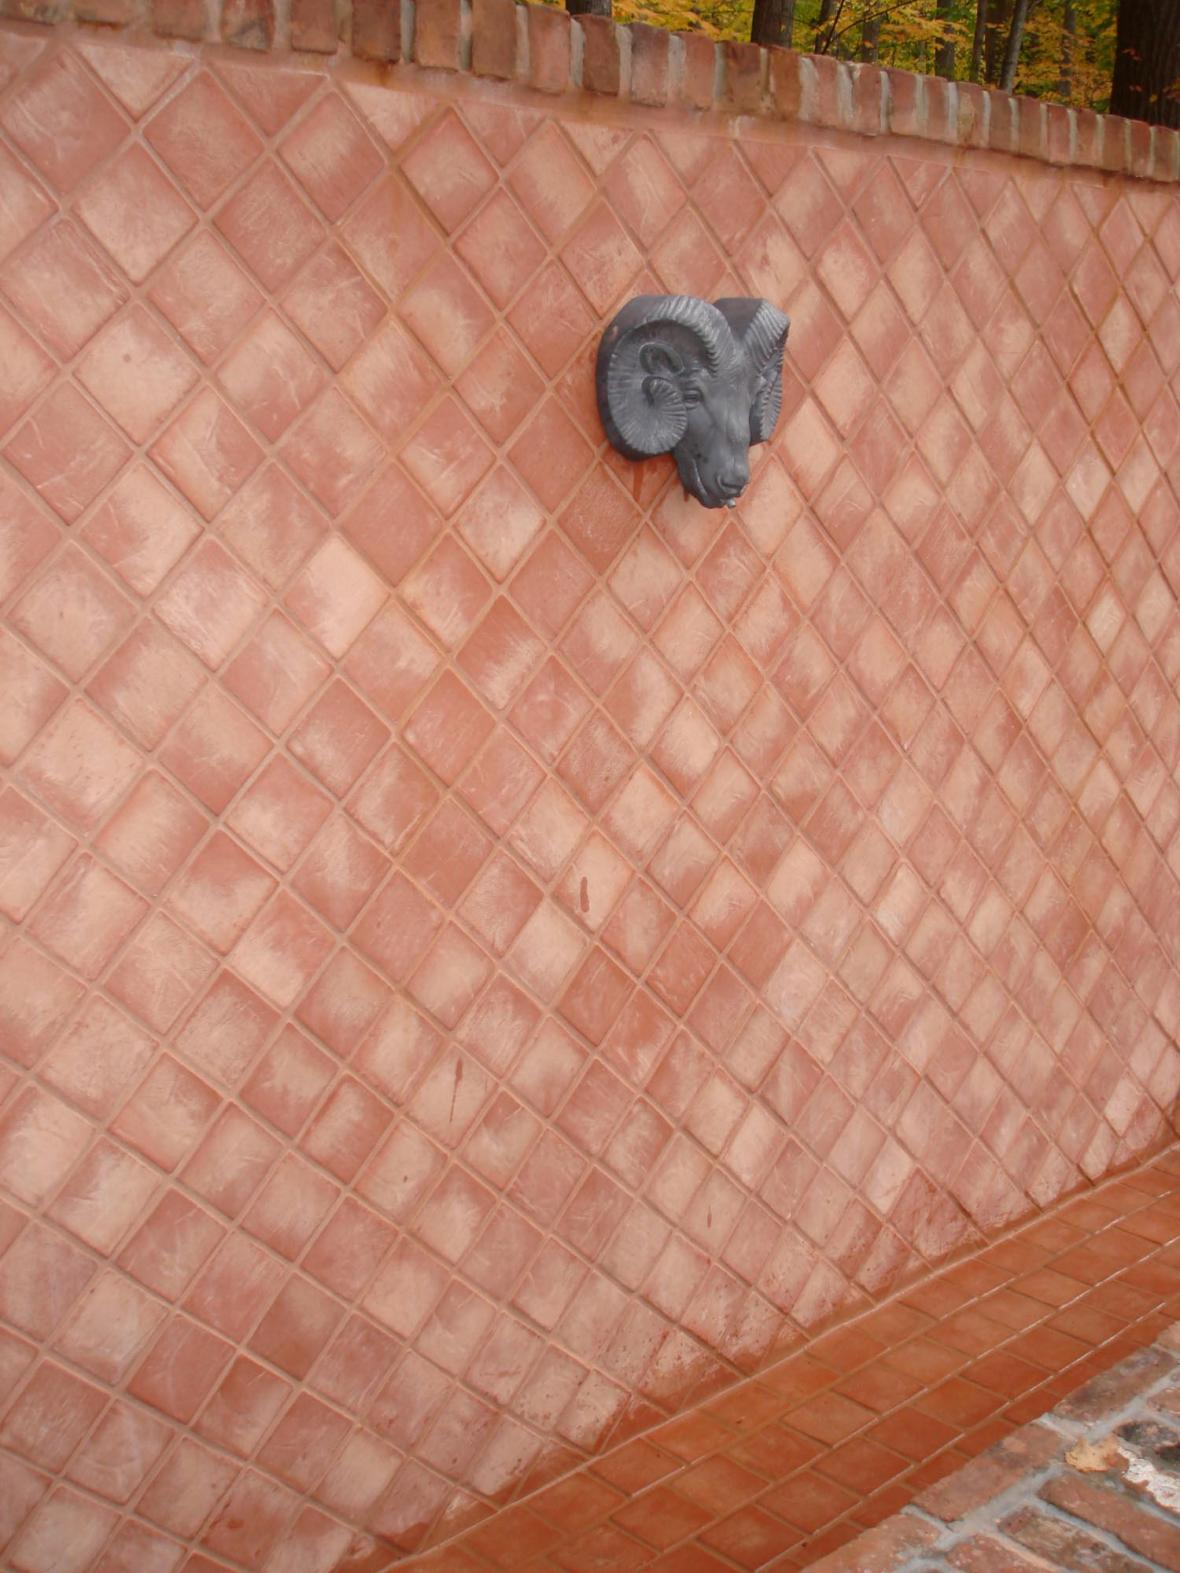 Left view of diagonal clay tile fountain